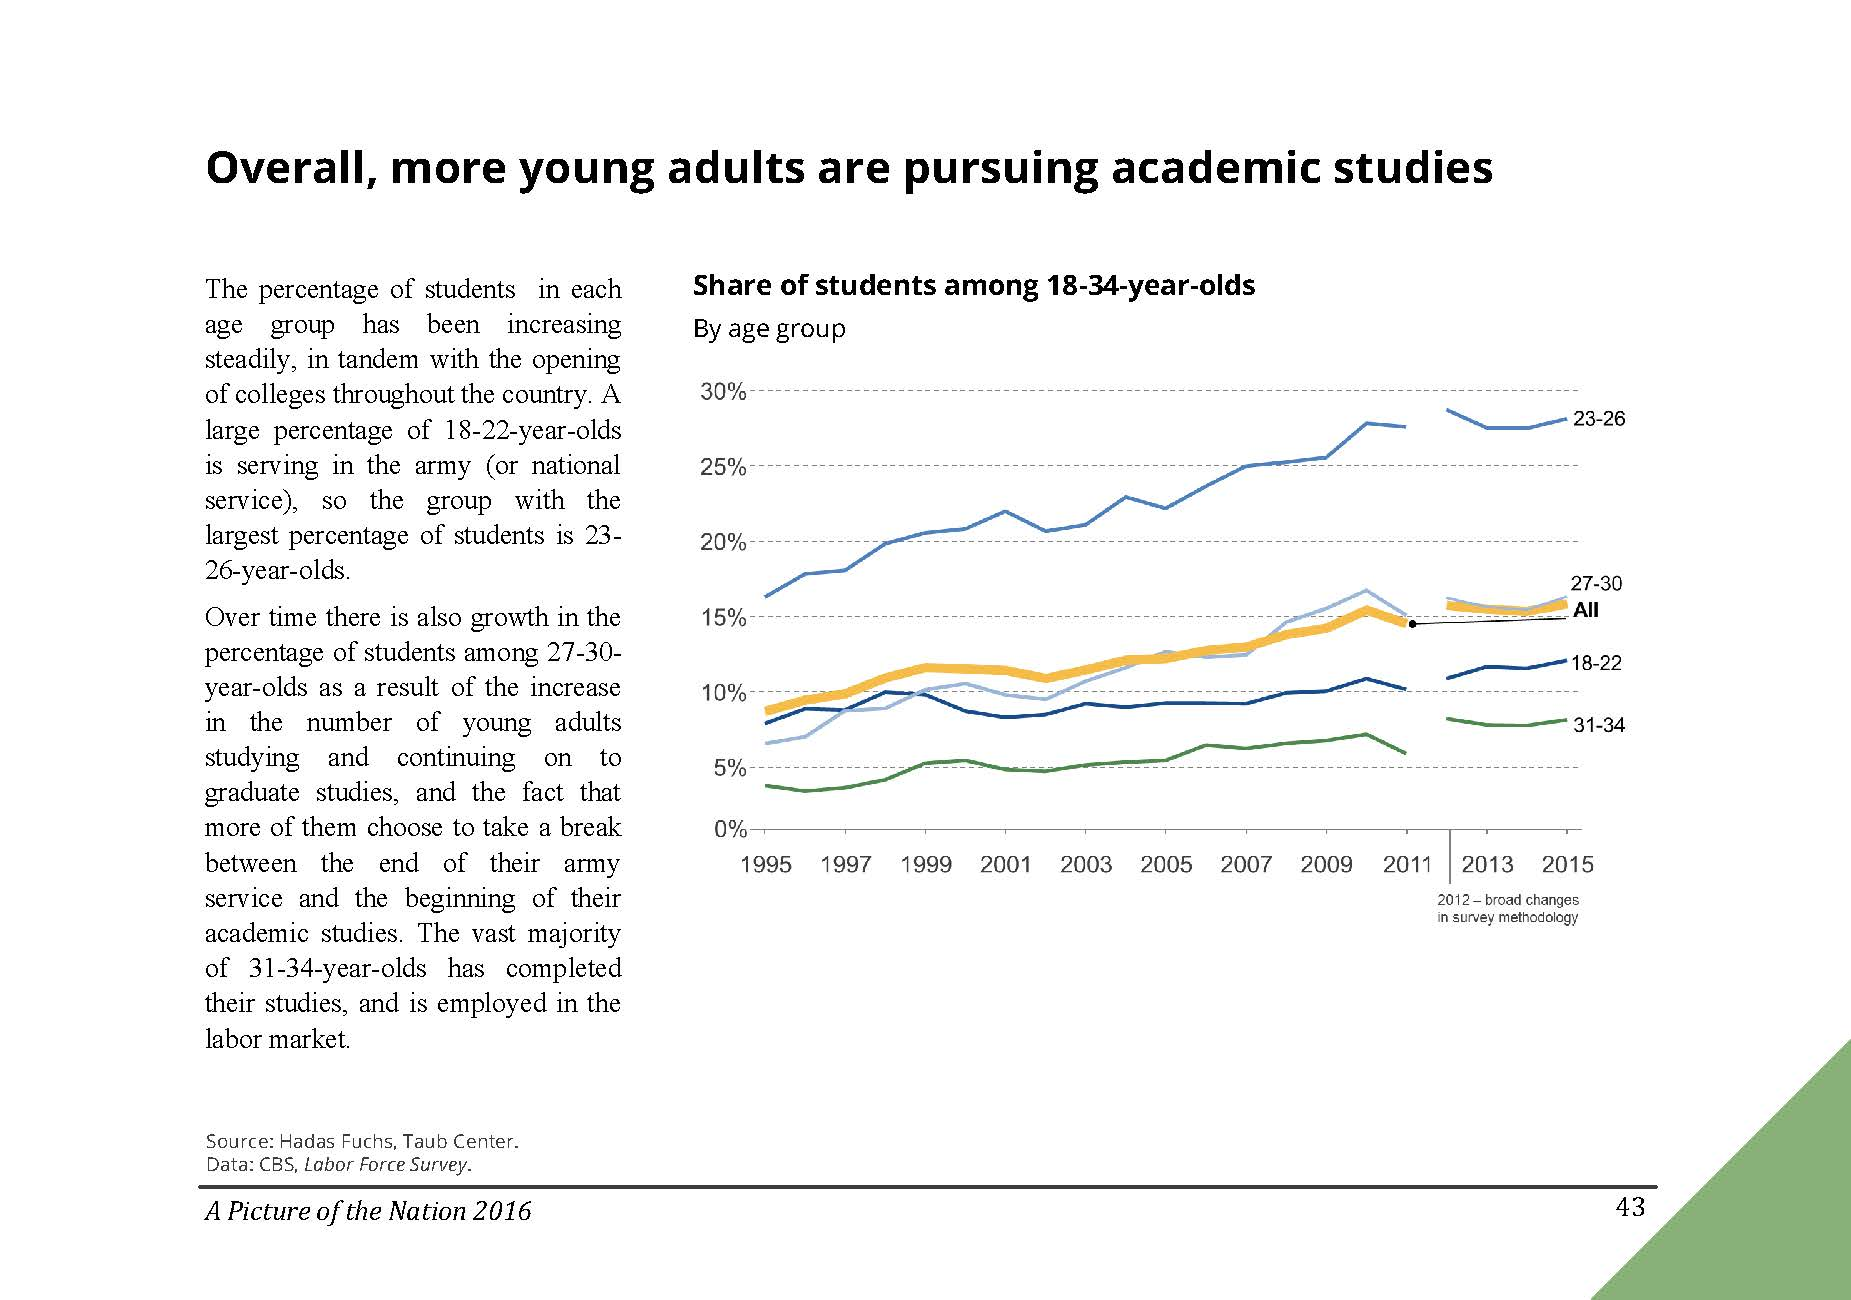 Overall, more young adults are pursuing academic studies in Israel